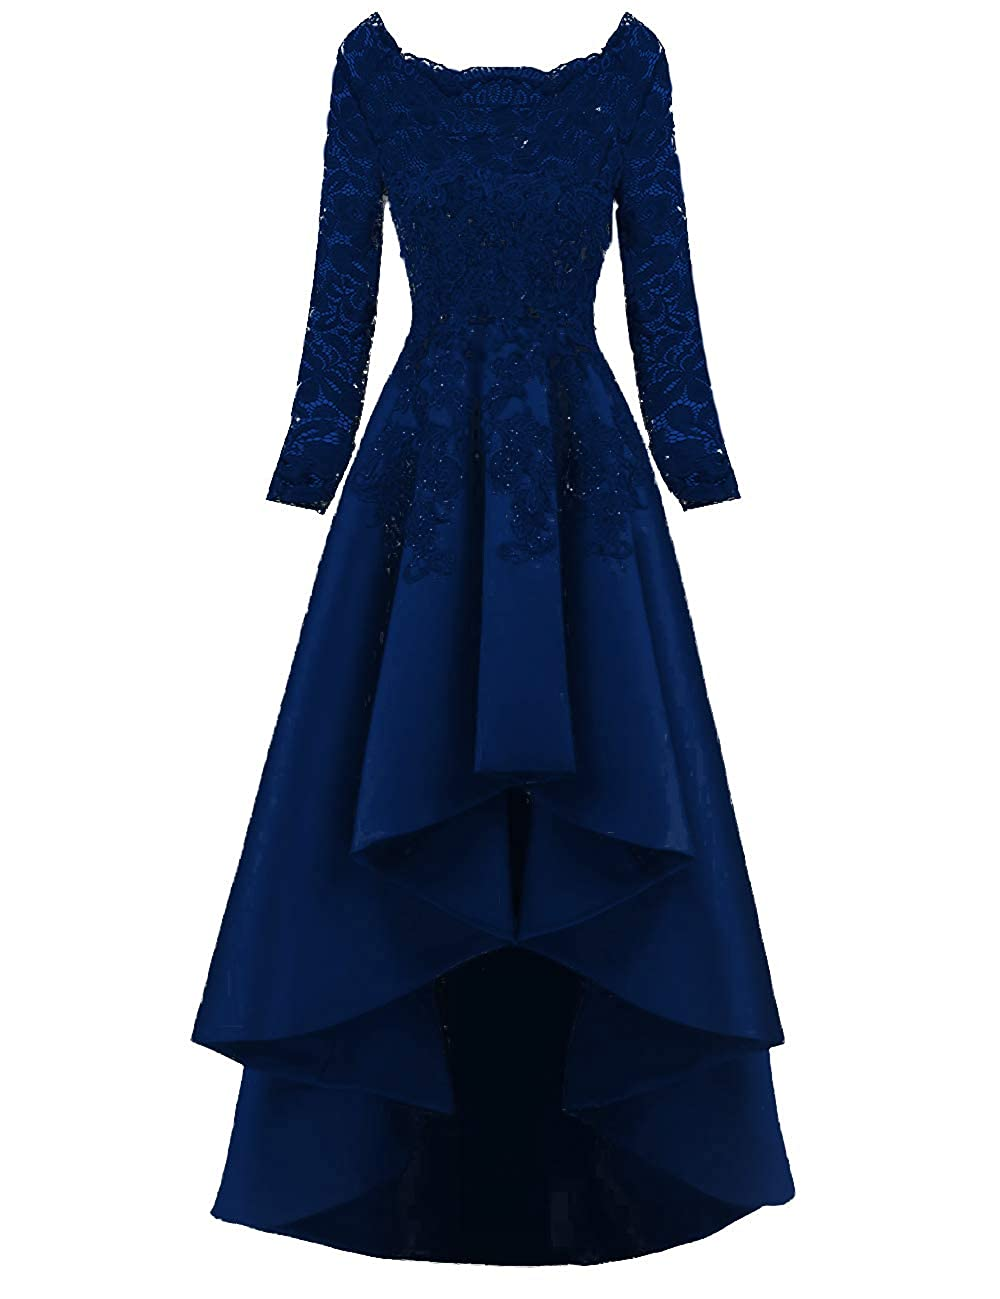 Navy bluee PROMNOVAS Long Sleeves Appliques Prom Dresses Ruffles Evening Party Dresses